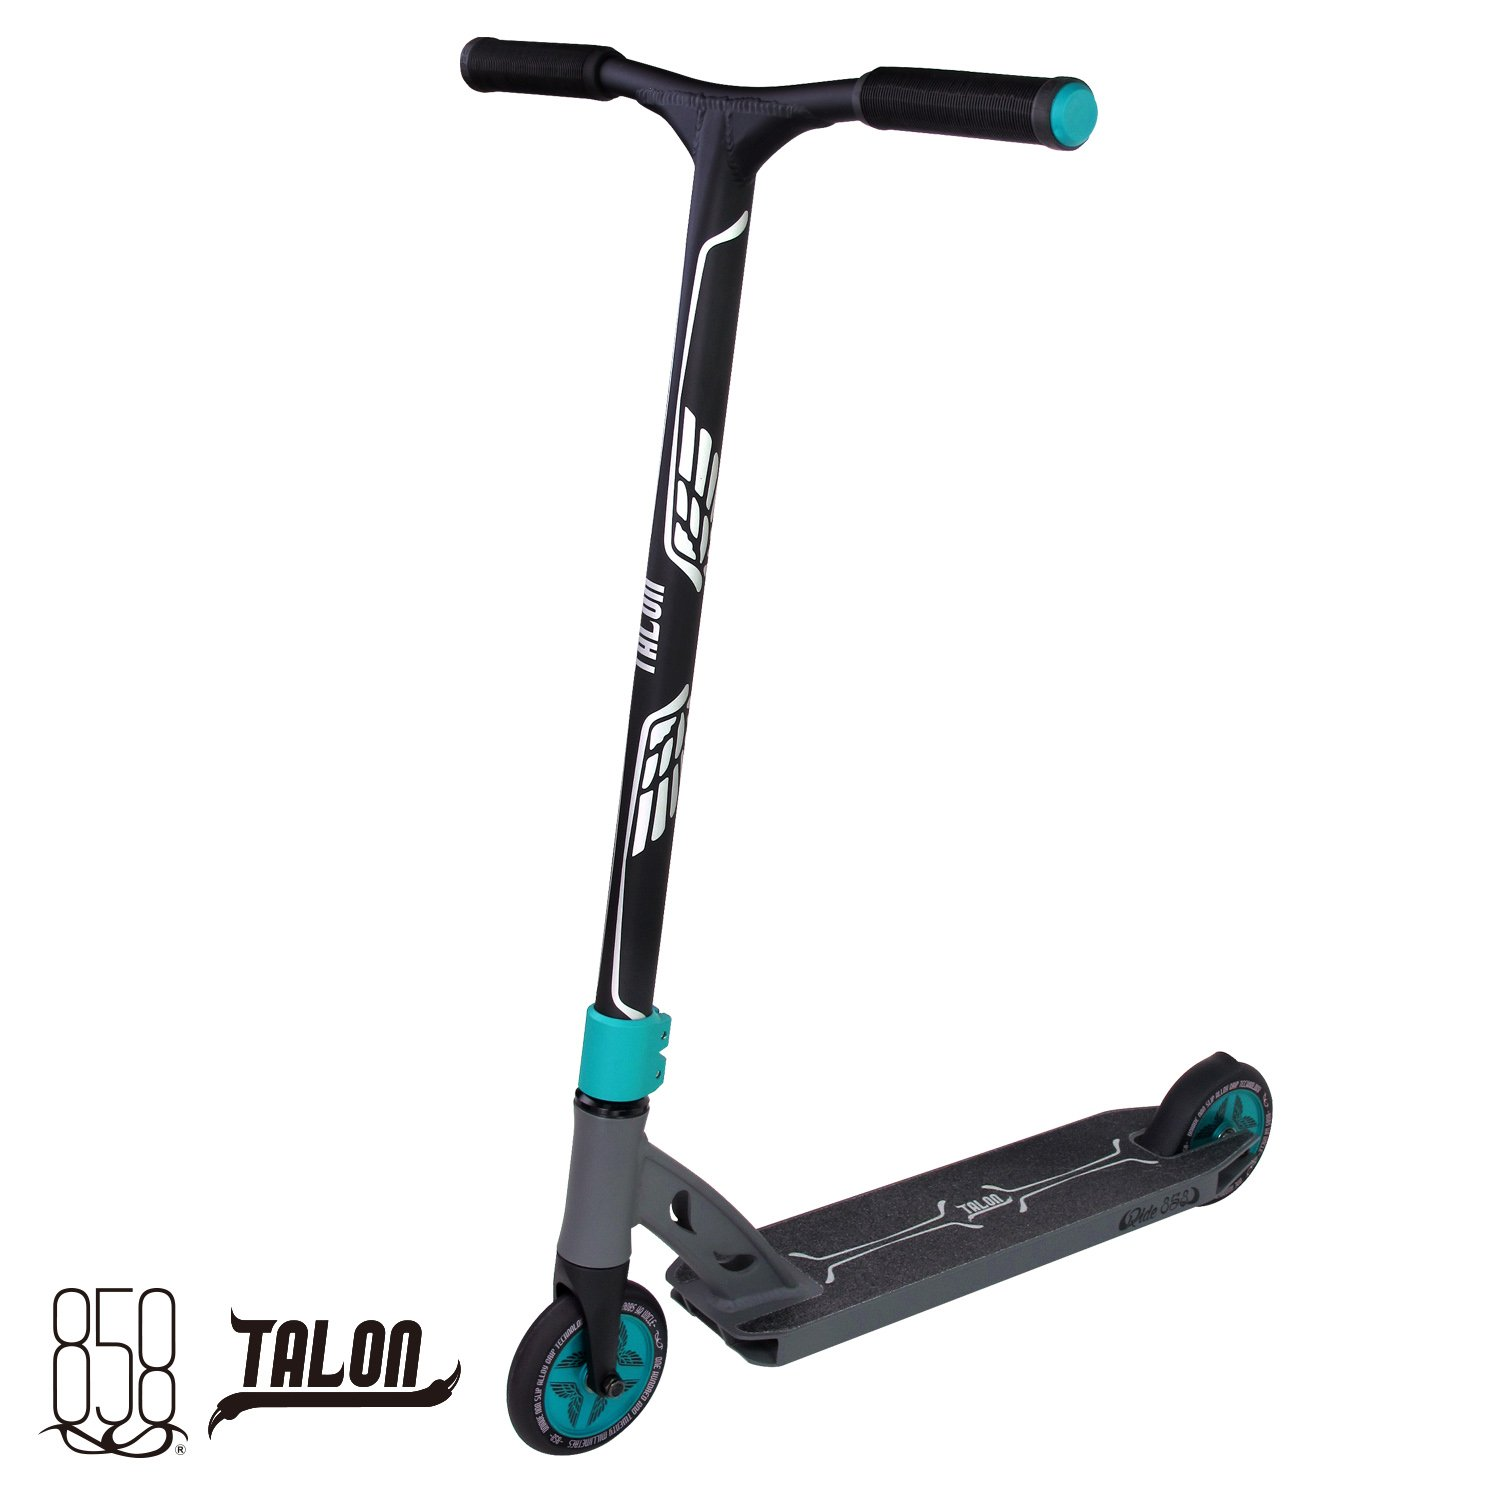 Talon Scooter Light + Strong With Heat Treated Patent Reinforced Aluminium Bar, 120MM Hollow Core Wheels With Fully Integrated Head Set For The Ultimate Performance By Ride 858 (MATTE TEAL/GUN GREY)